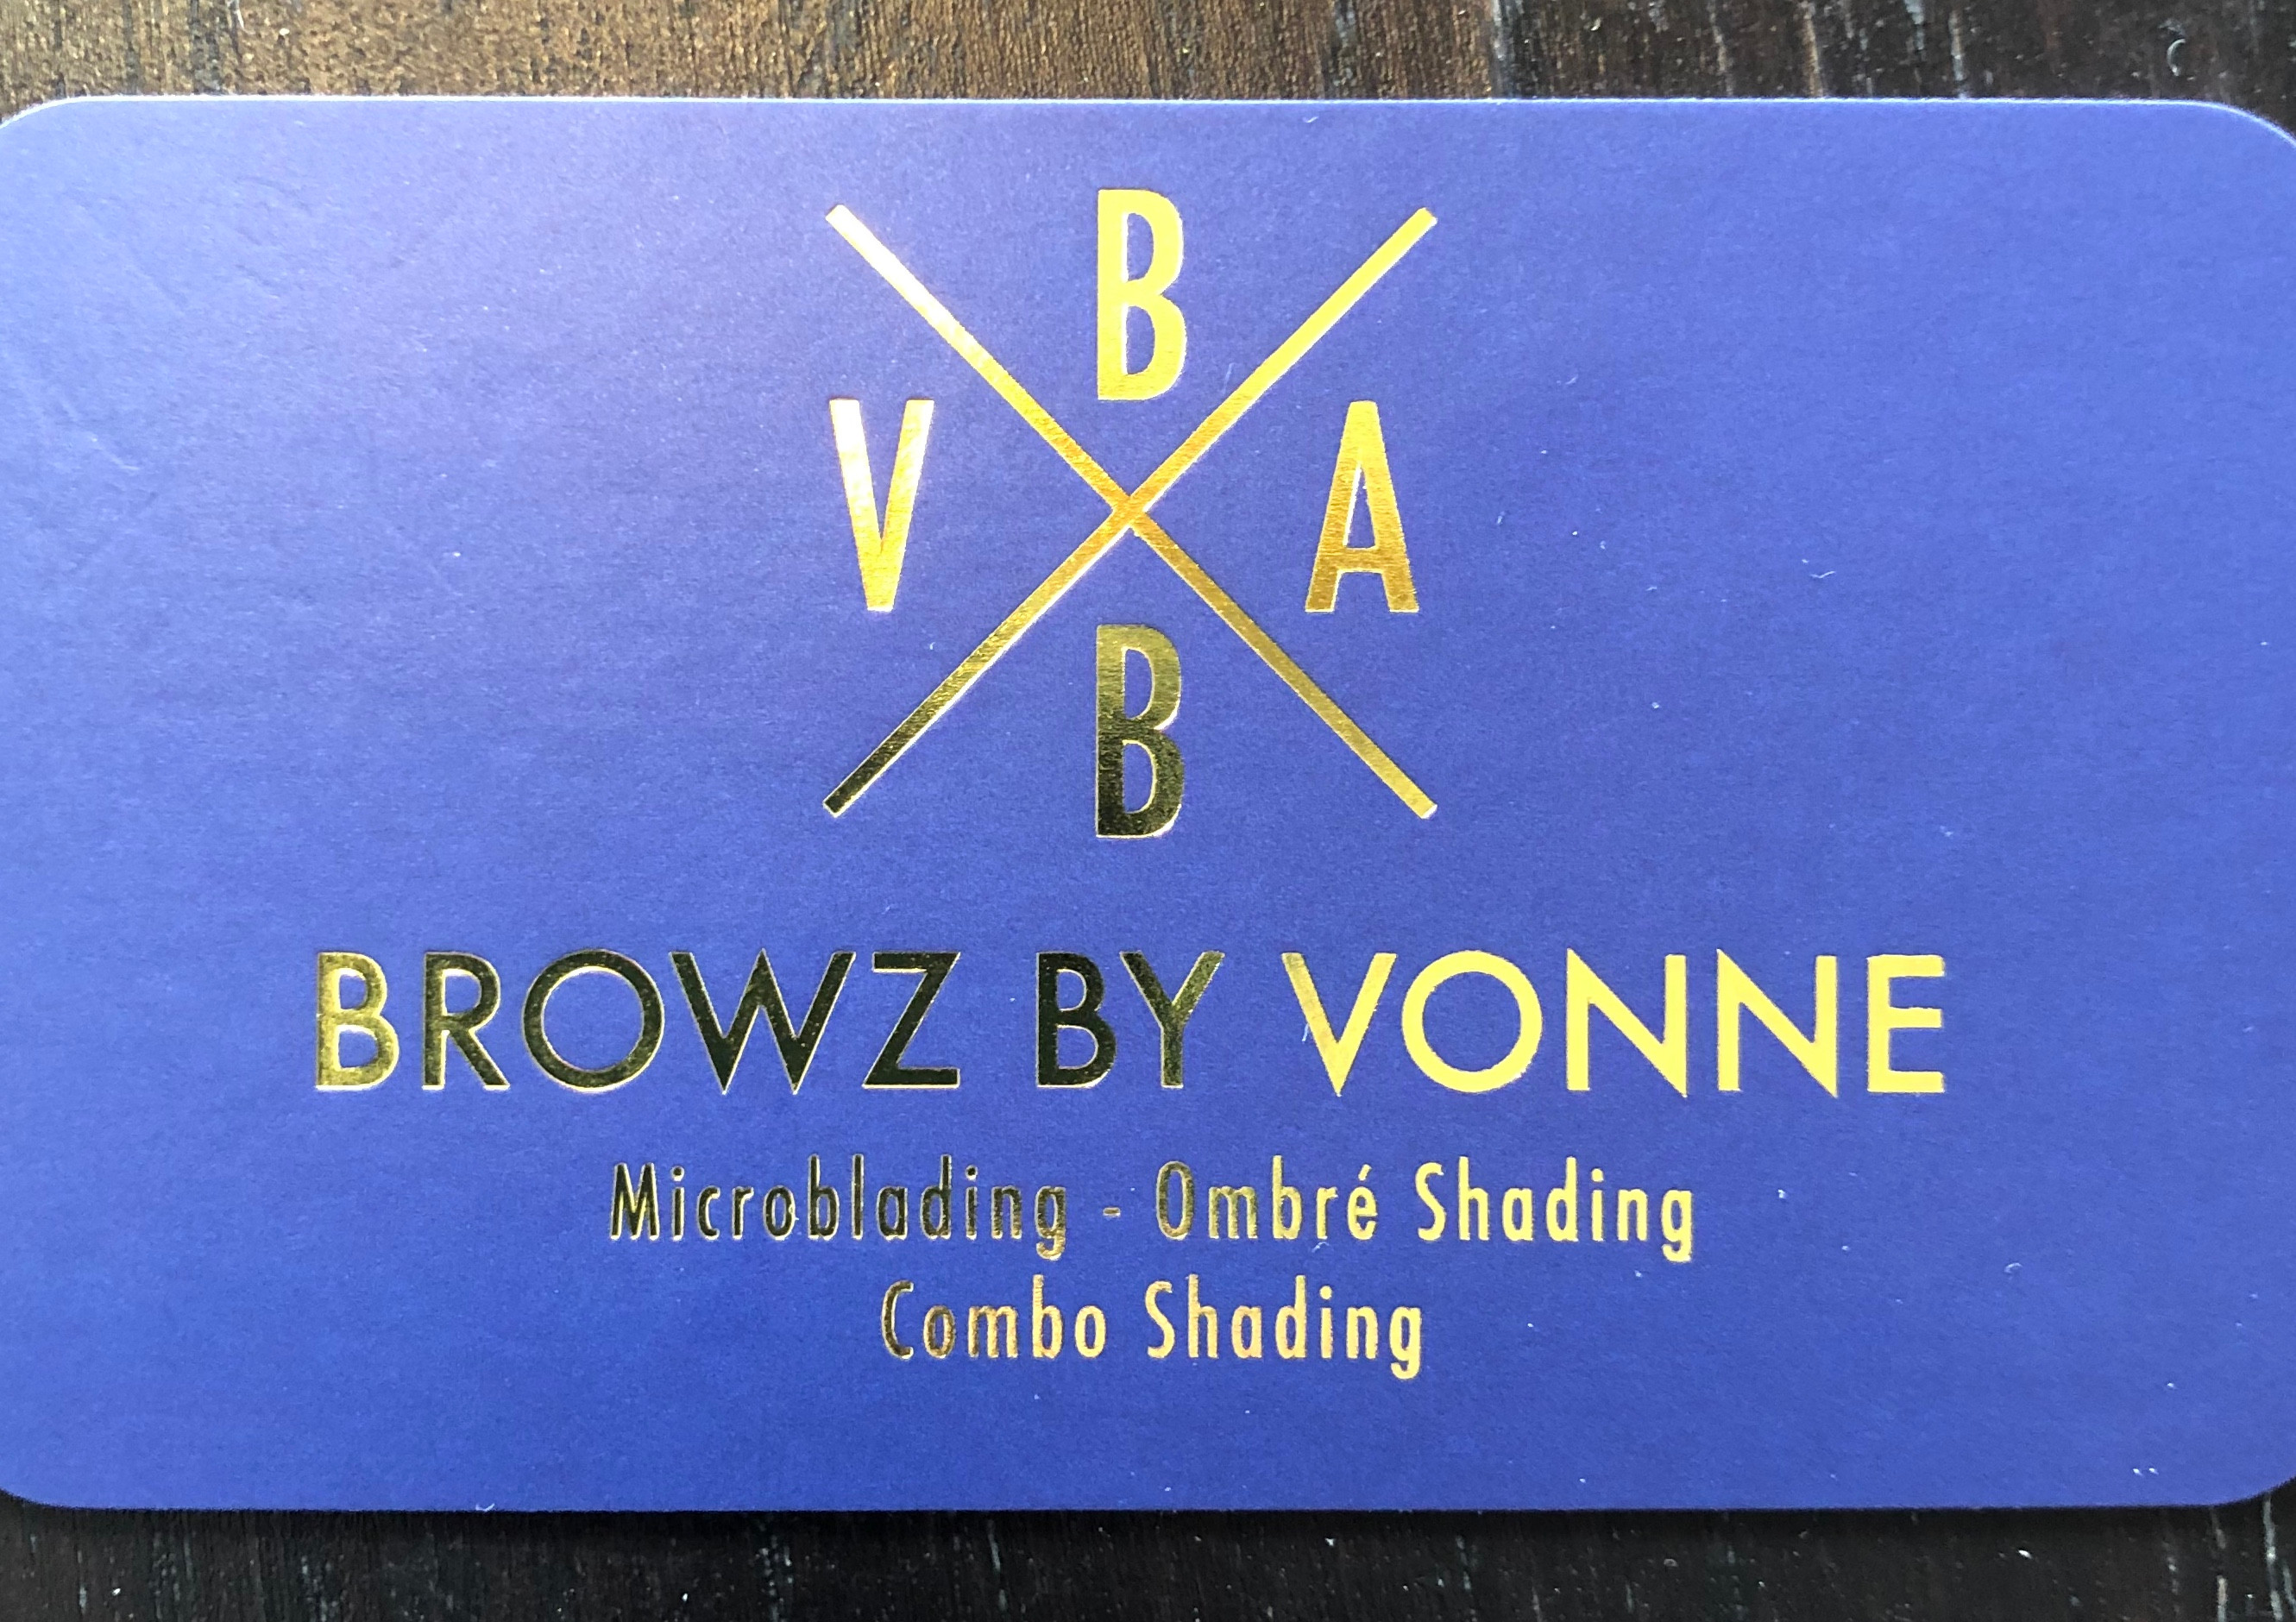 Combination Brow Touch Up